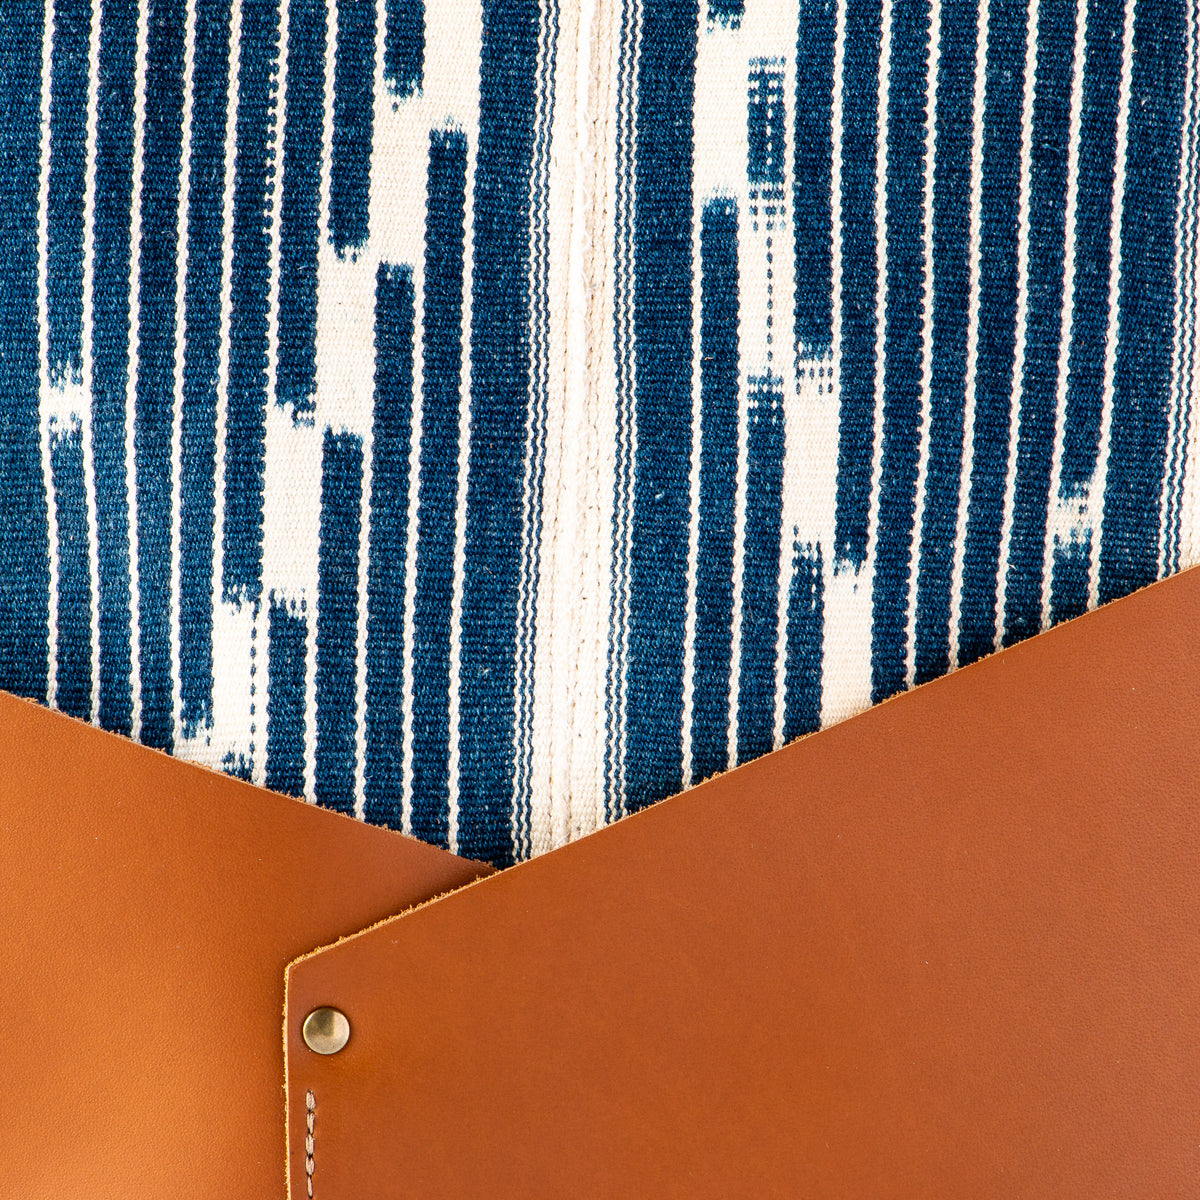 Fabric Detail - Handcrafted 13 Inch Laptop Backpack in Leather &  Ivorian Indigo Fabric - Sold by Chic & Basta